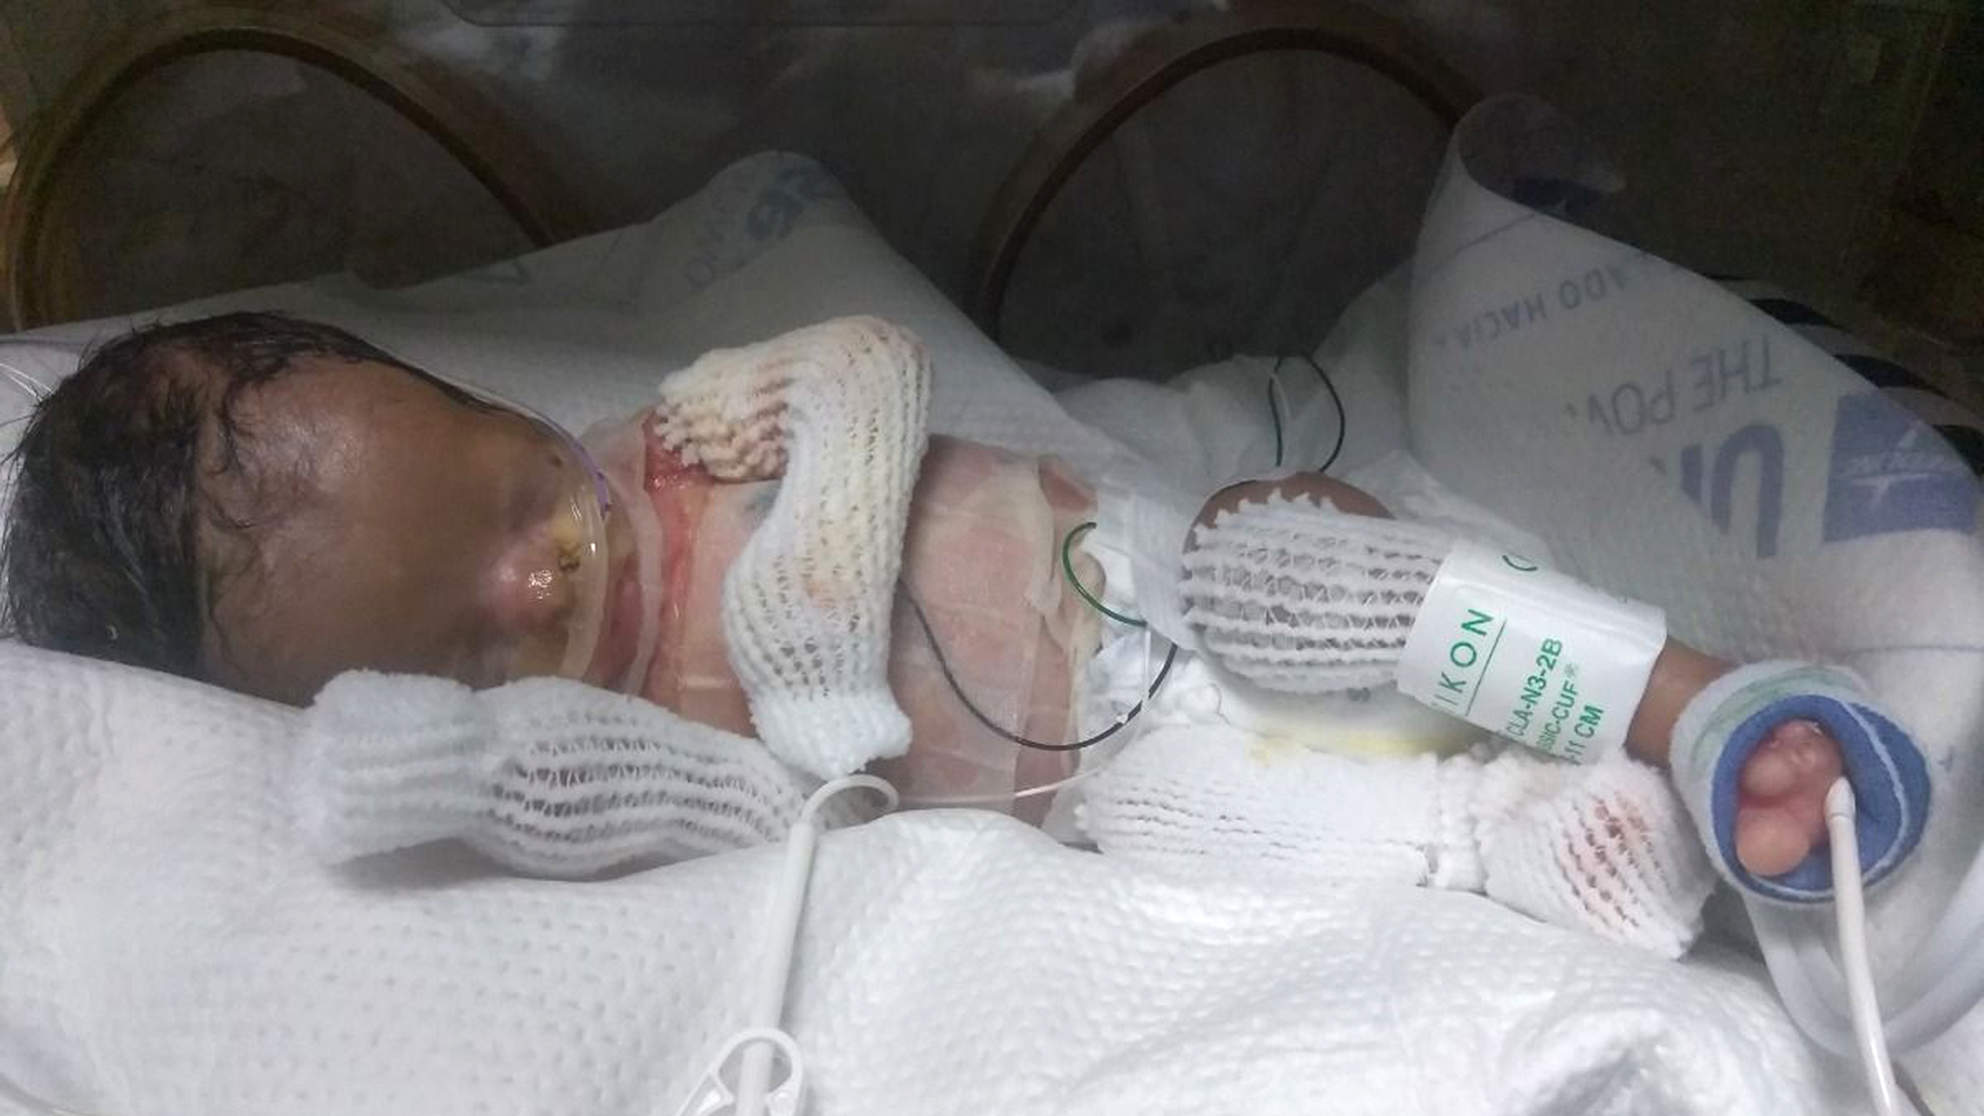 Baby Born Without Skin Still a Mystery to Doctors 7 Months After His Birth